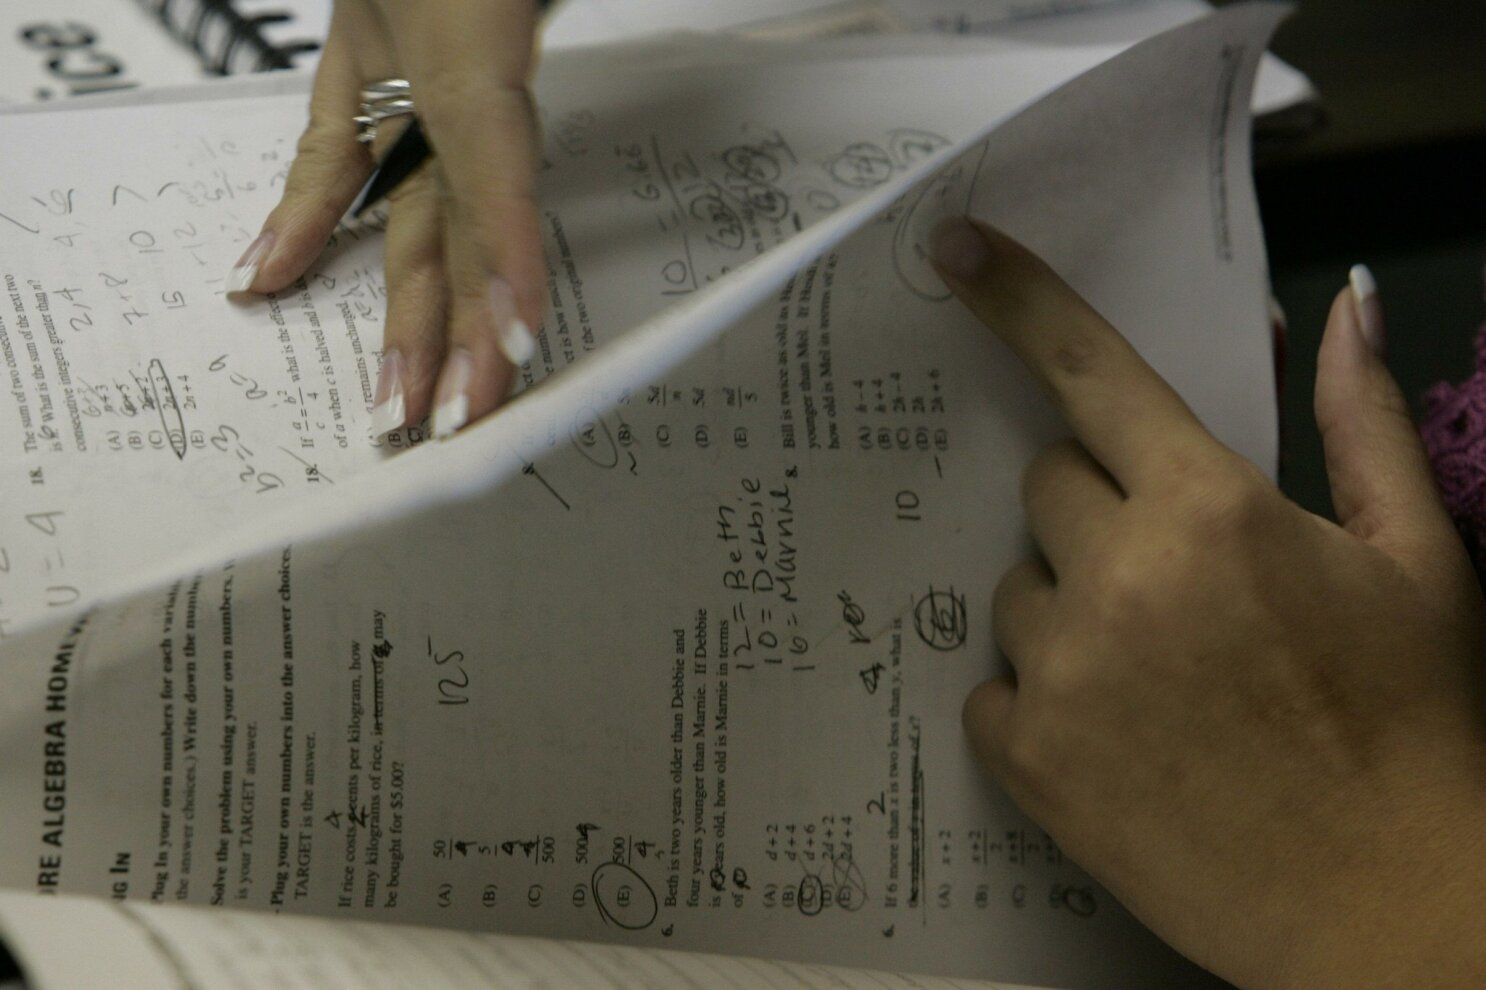 Teachers, experts question traditional ways of grading